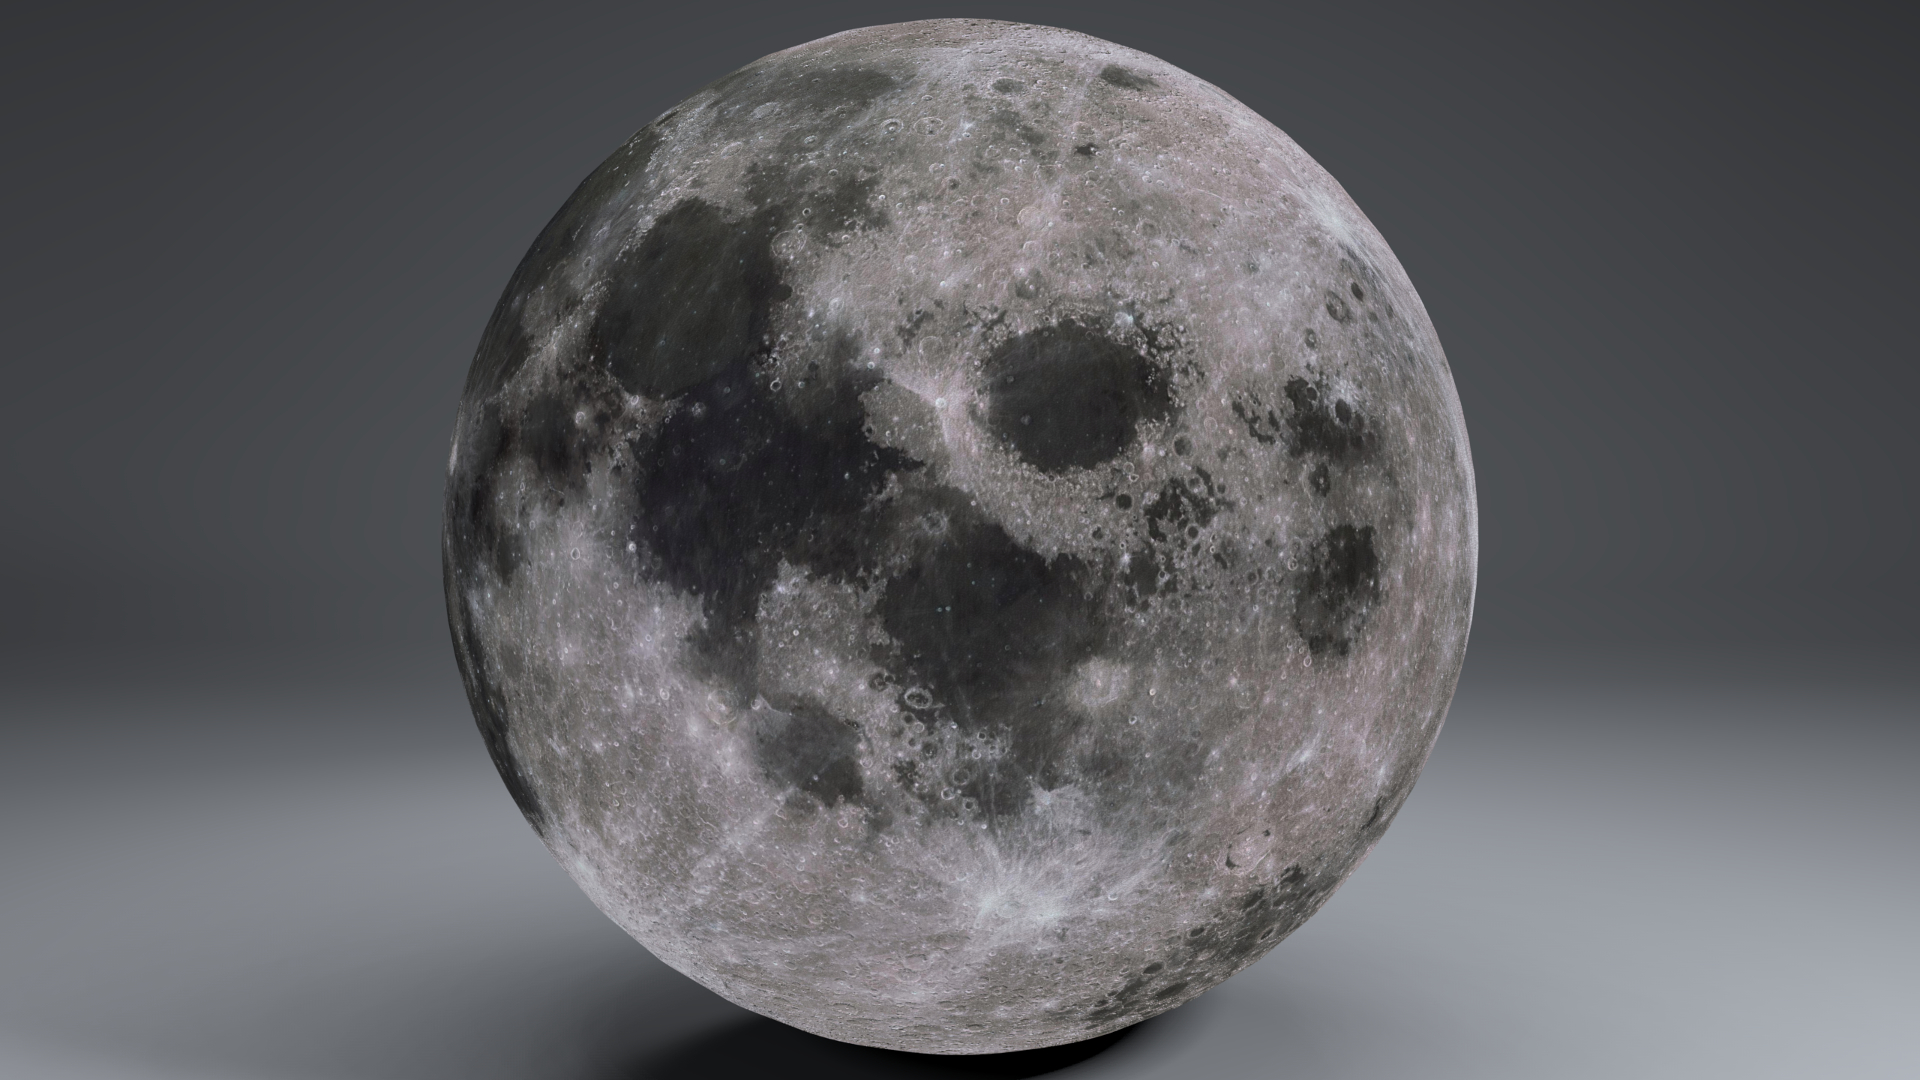 moonglobe 8k 3d model 3ds fbx blend dae obj 221868